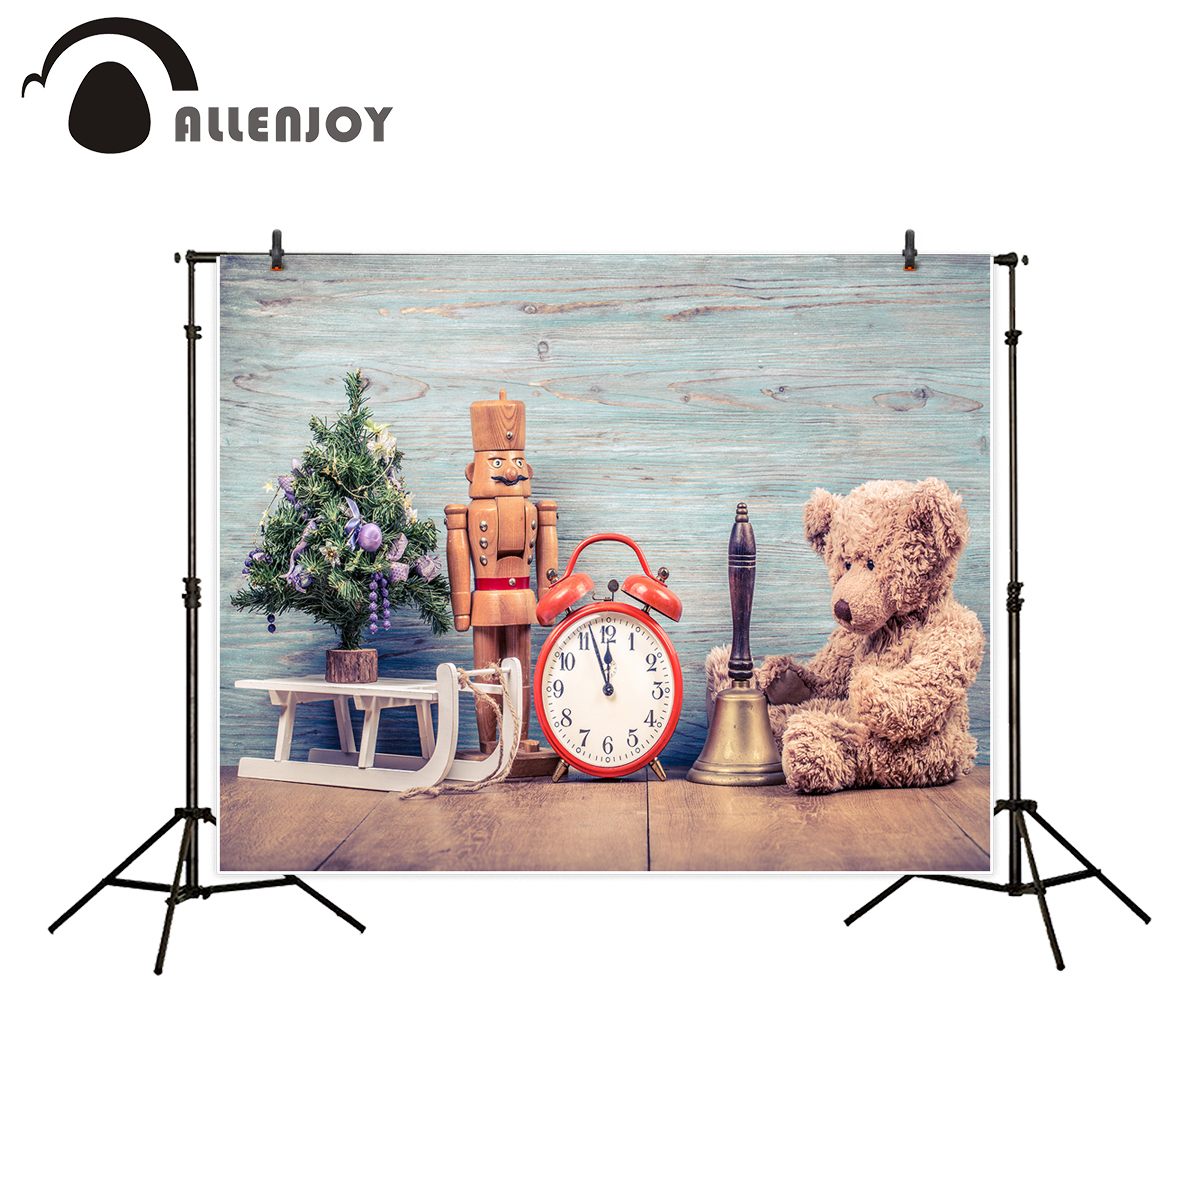 Allenjoy kids background for photography new year tree bear toy bronze bell vintage clock wood sleigh wall backdrop photocall